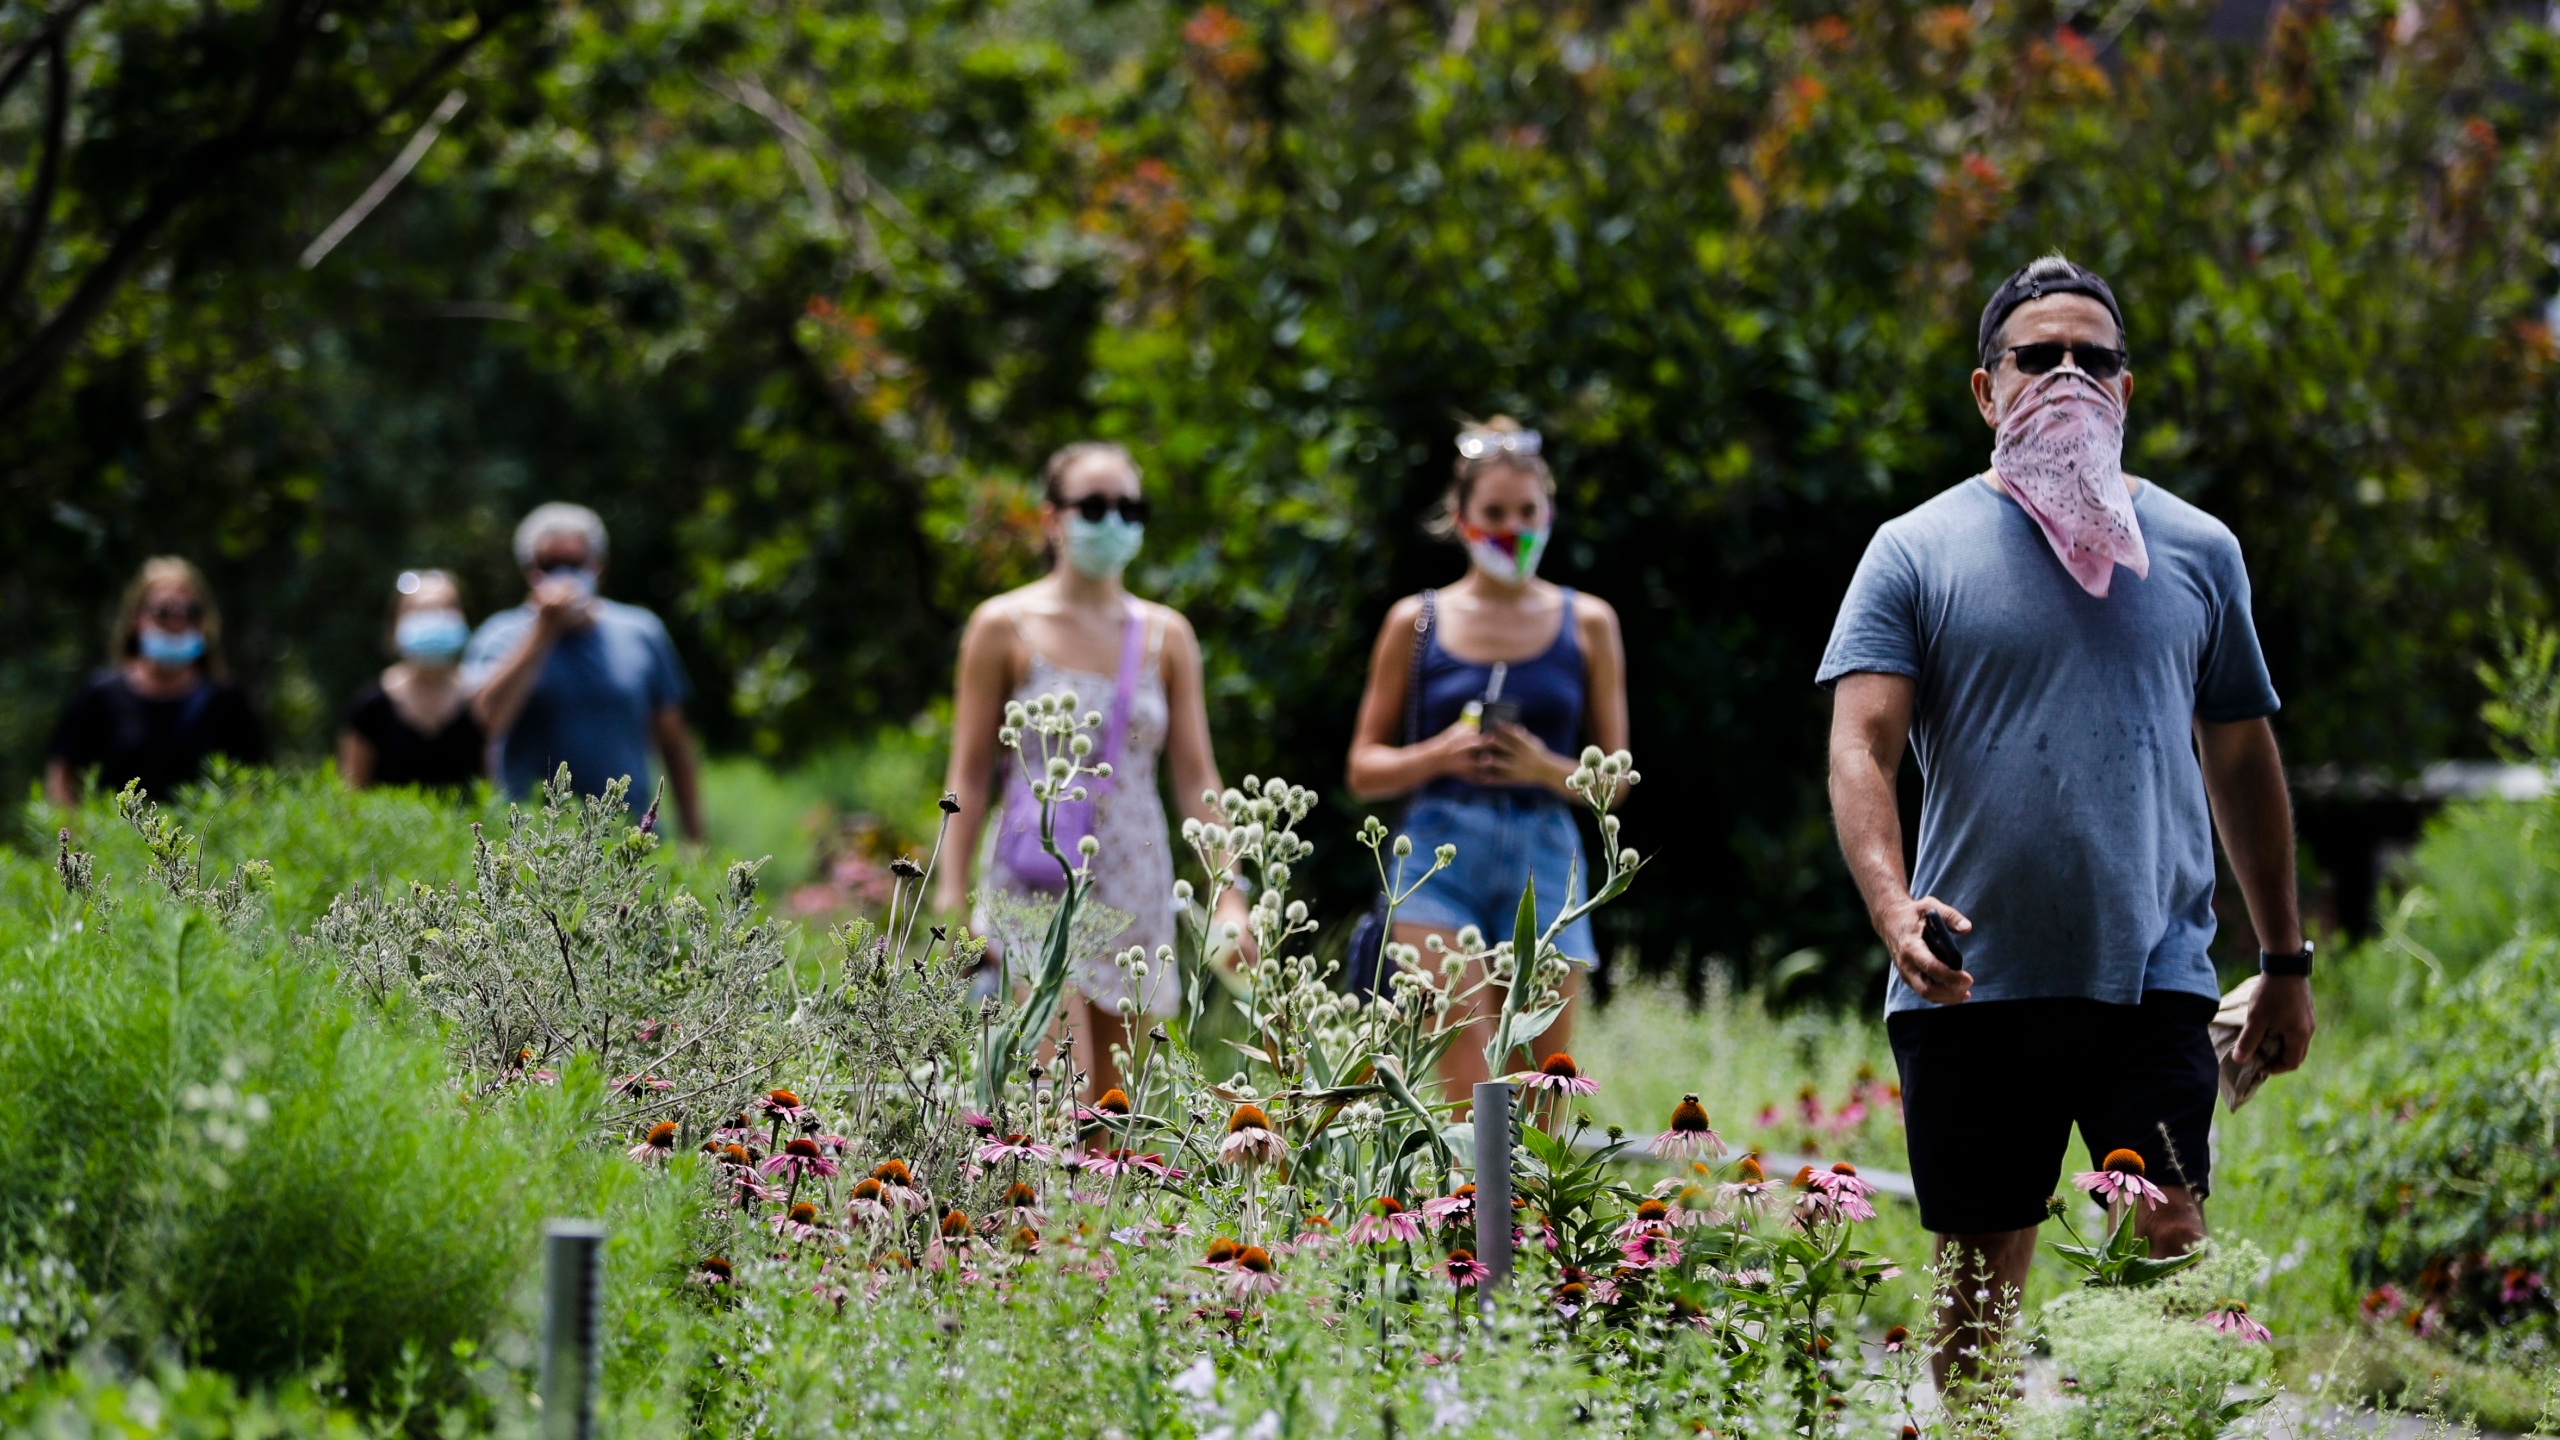 People walk along the High Line Park in New York City on July 16, 2020. (Frank Franklin II / Associated Press)